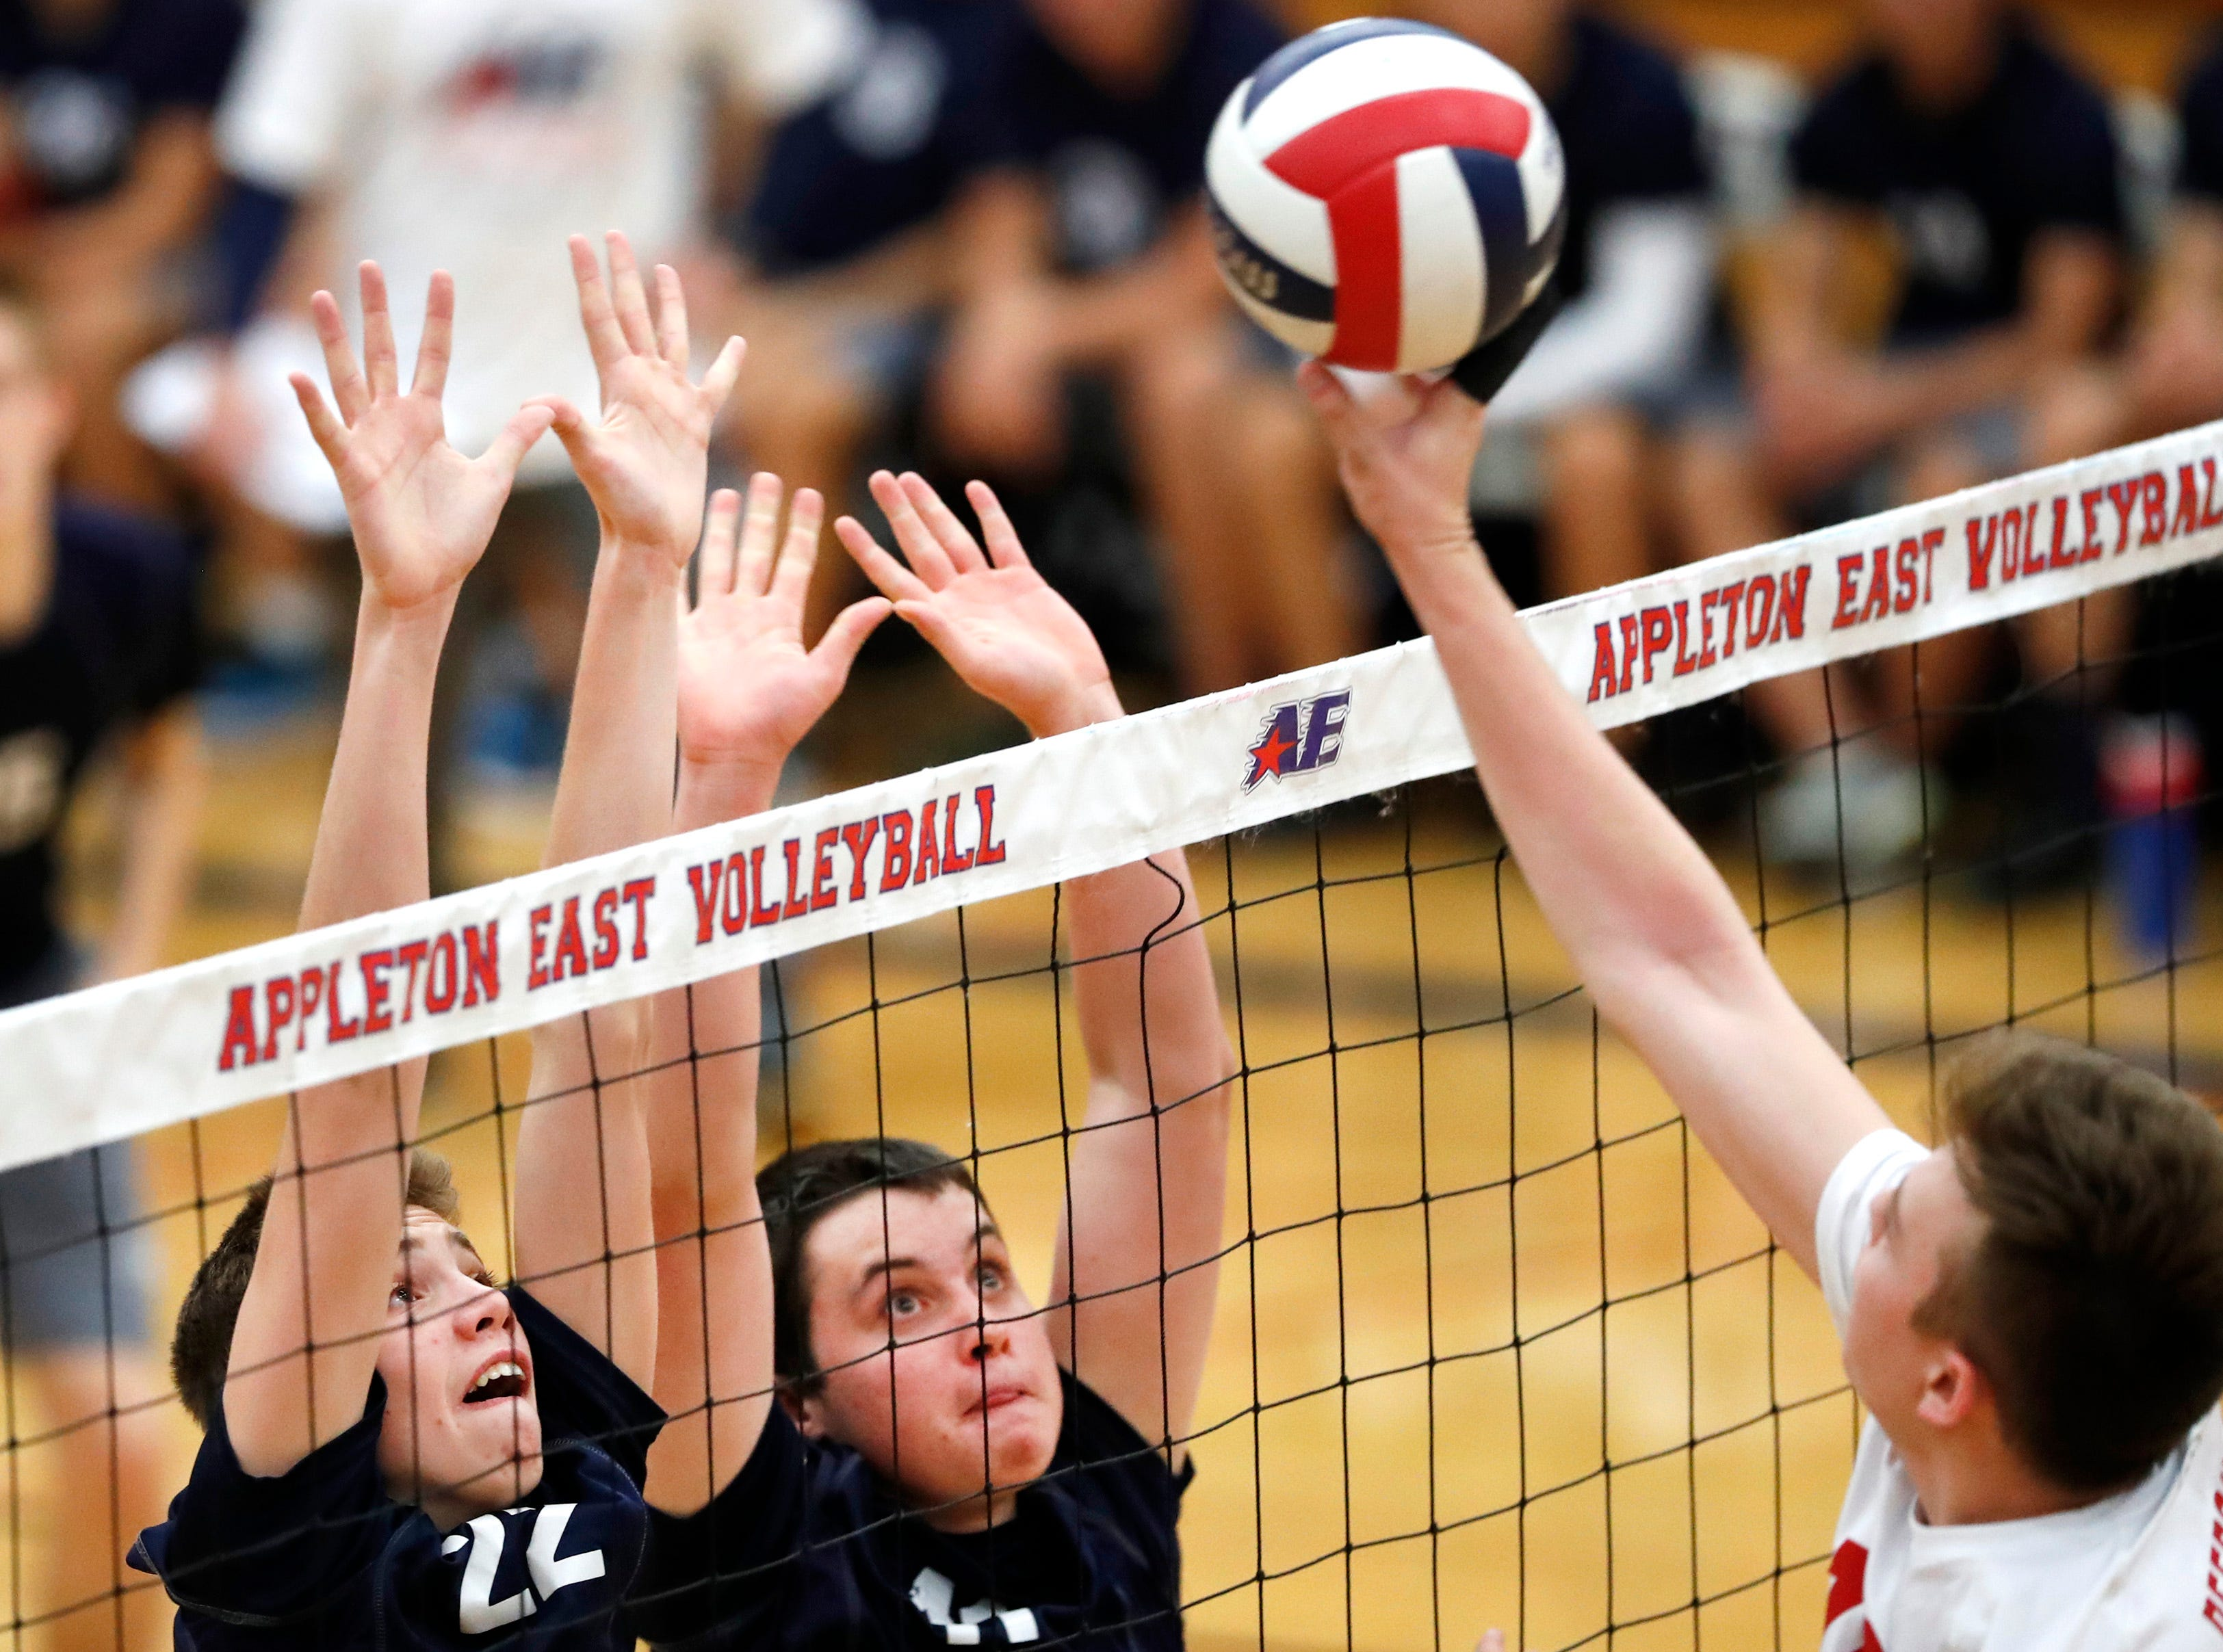 Appleton East's Drew Carpenter and Dylan Timmer jump for a block during their match against Neenah Tuesday, Oct. 23, 2018, in Appleton, Wis.Danny Damiani/USA TODAY NETWORK-Wisconsin